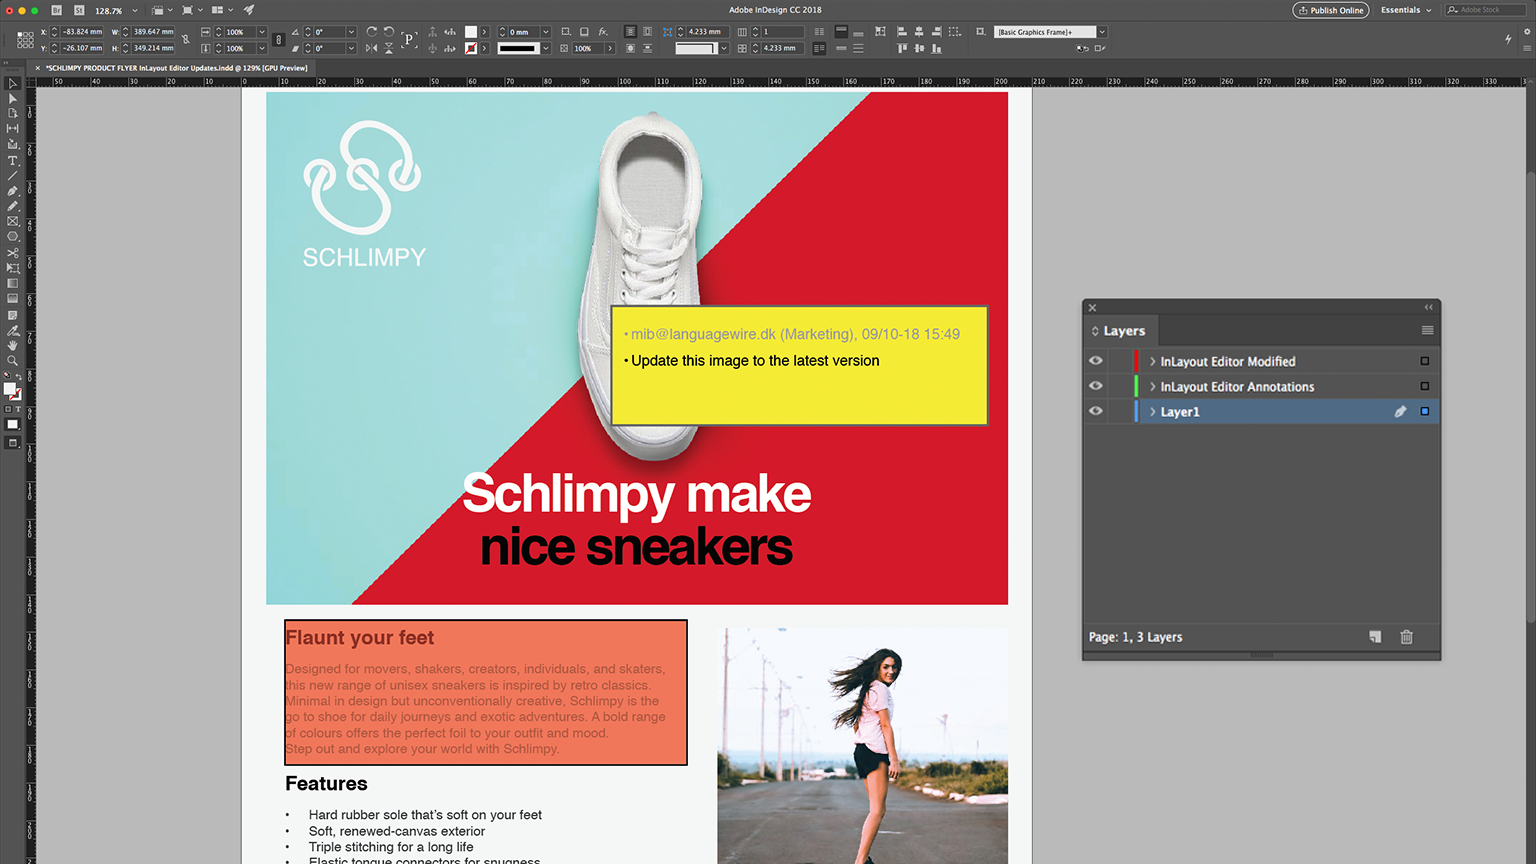 InDesign-vy i InLayout Editor